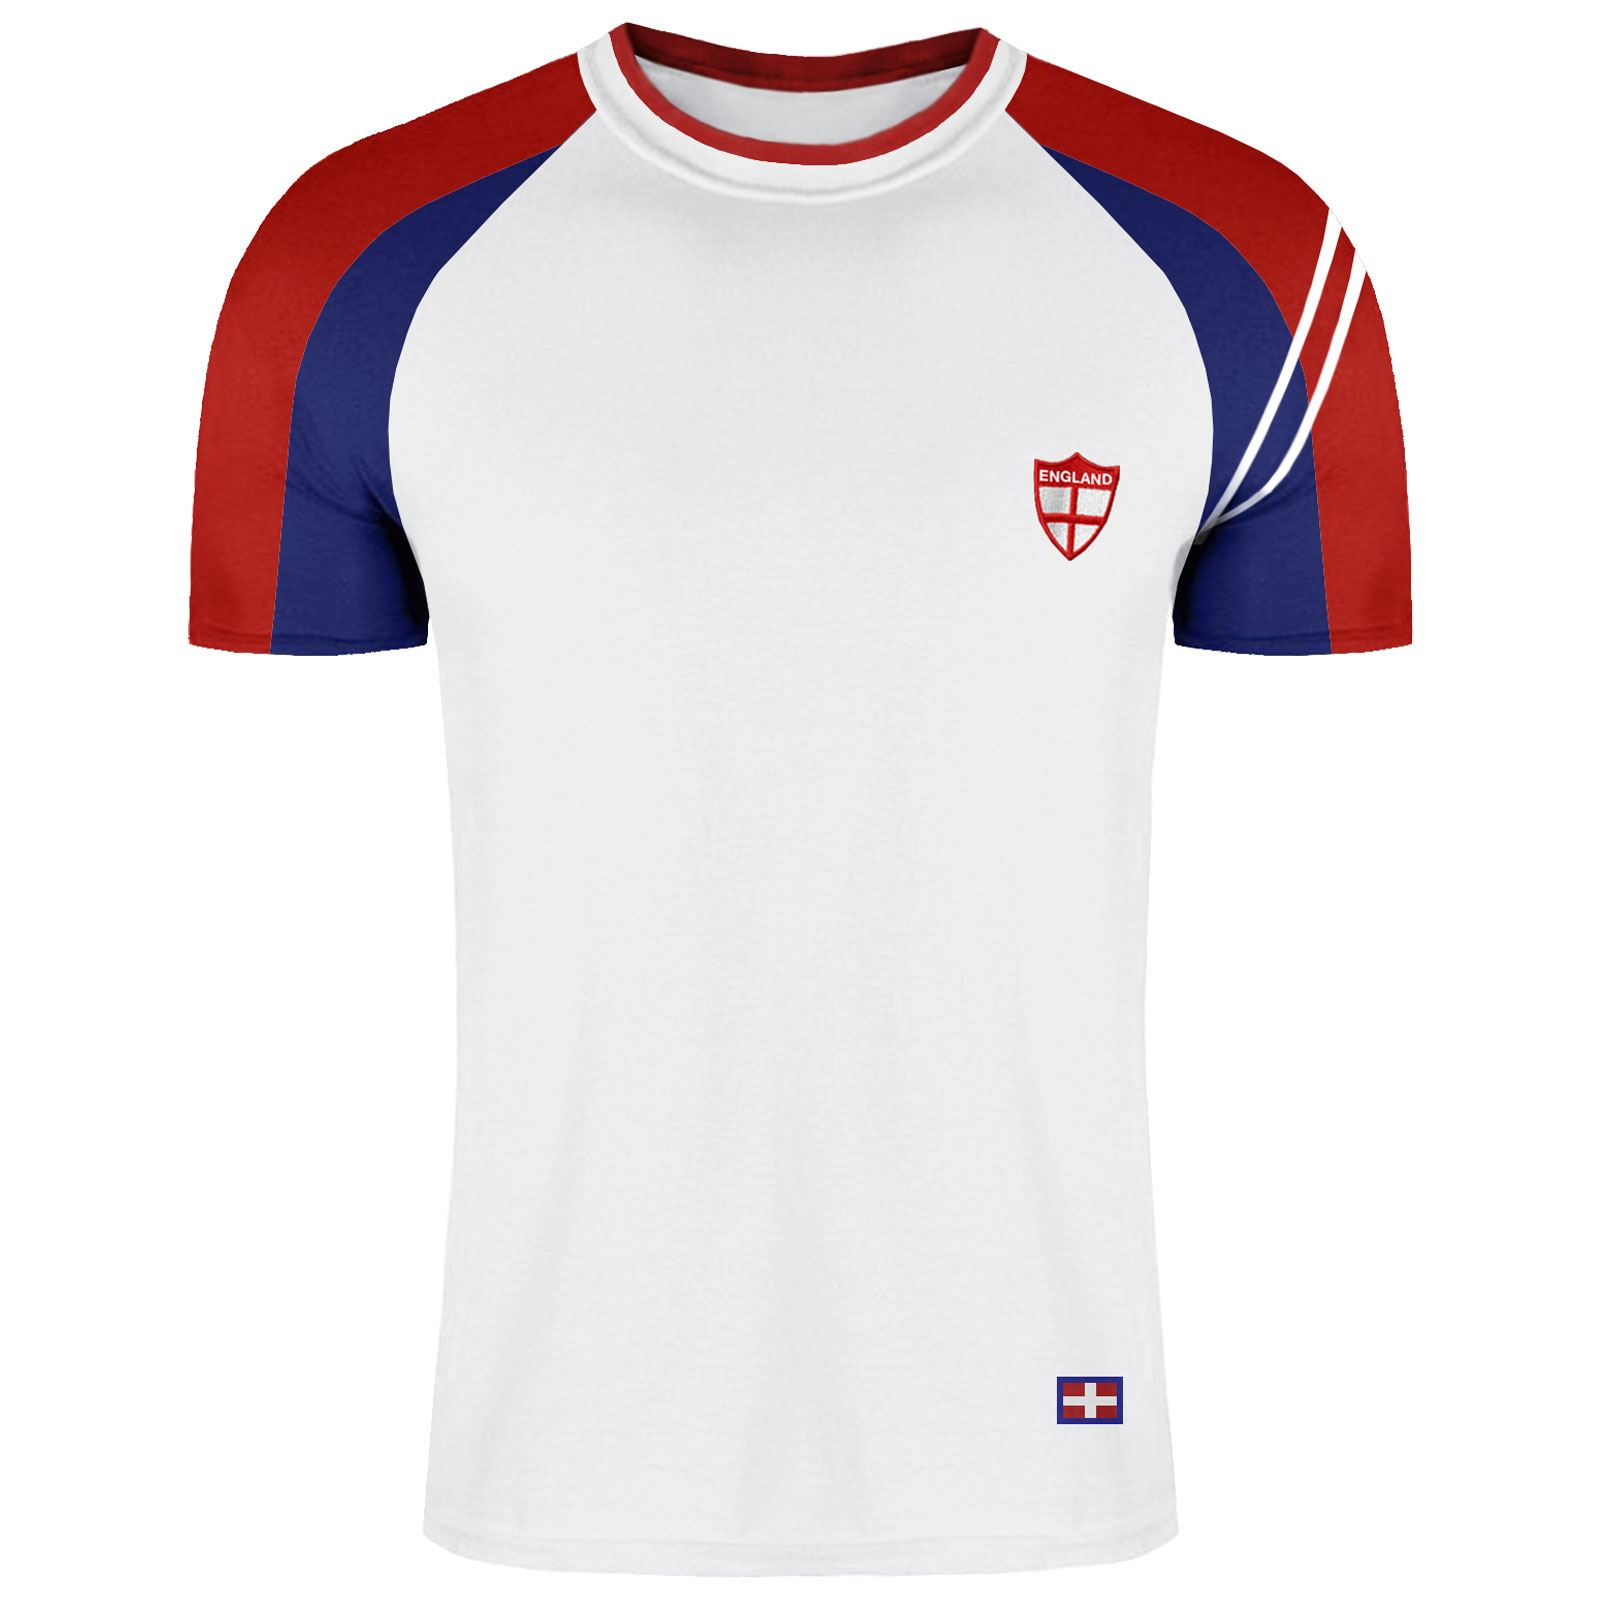 MENS-ENGLAND-TOP-POLO-T-SHIRTS-SHORT-SLEEVE-SPORTS-CRICKET-FOOTBALL-GOLF-TEES thumbnail 10